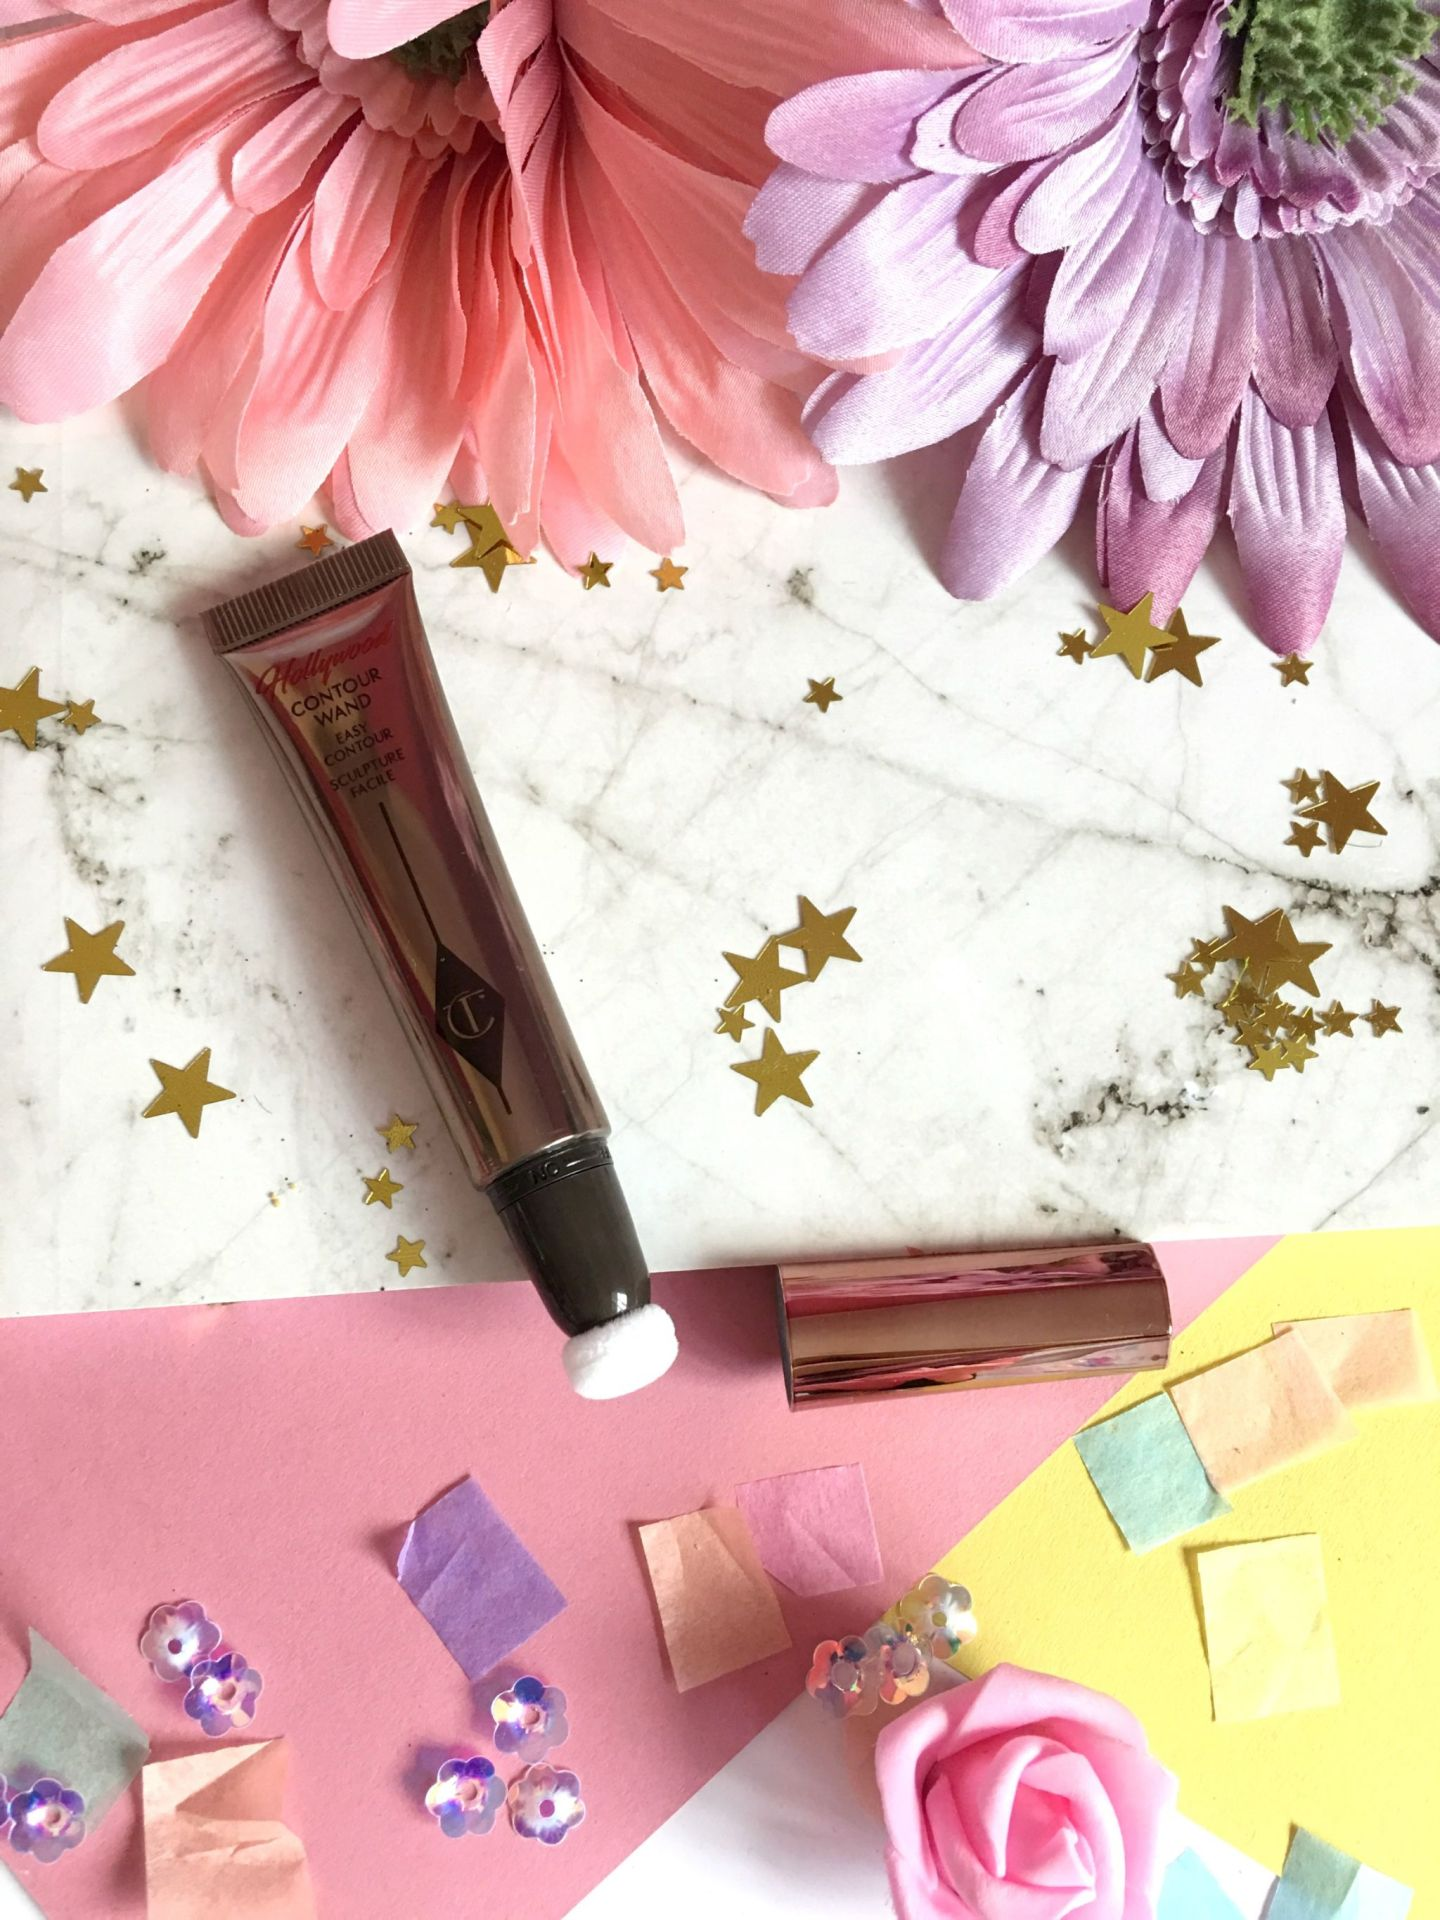 Charlotte Tilbury Hollywood Beauty Wands Musings of a Makeup Junkie